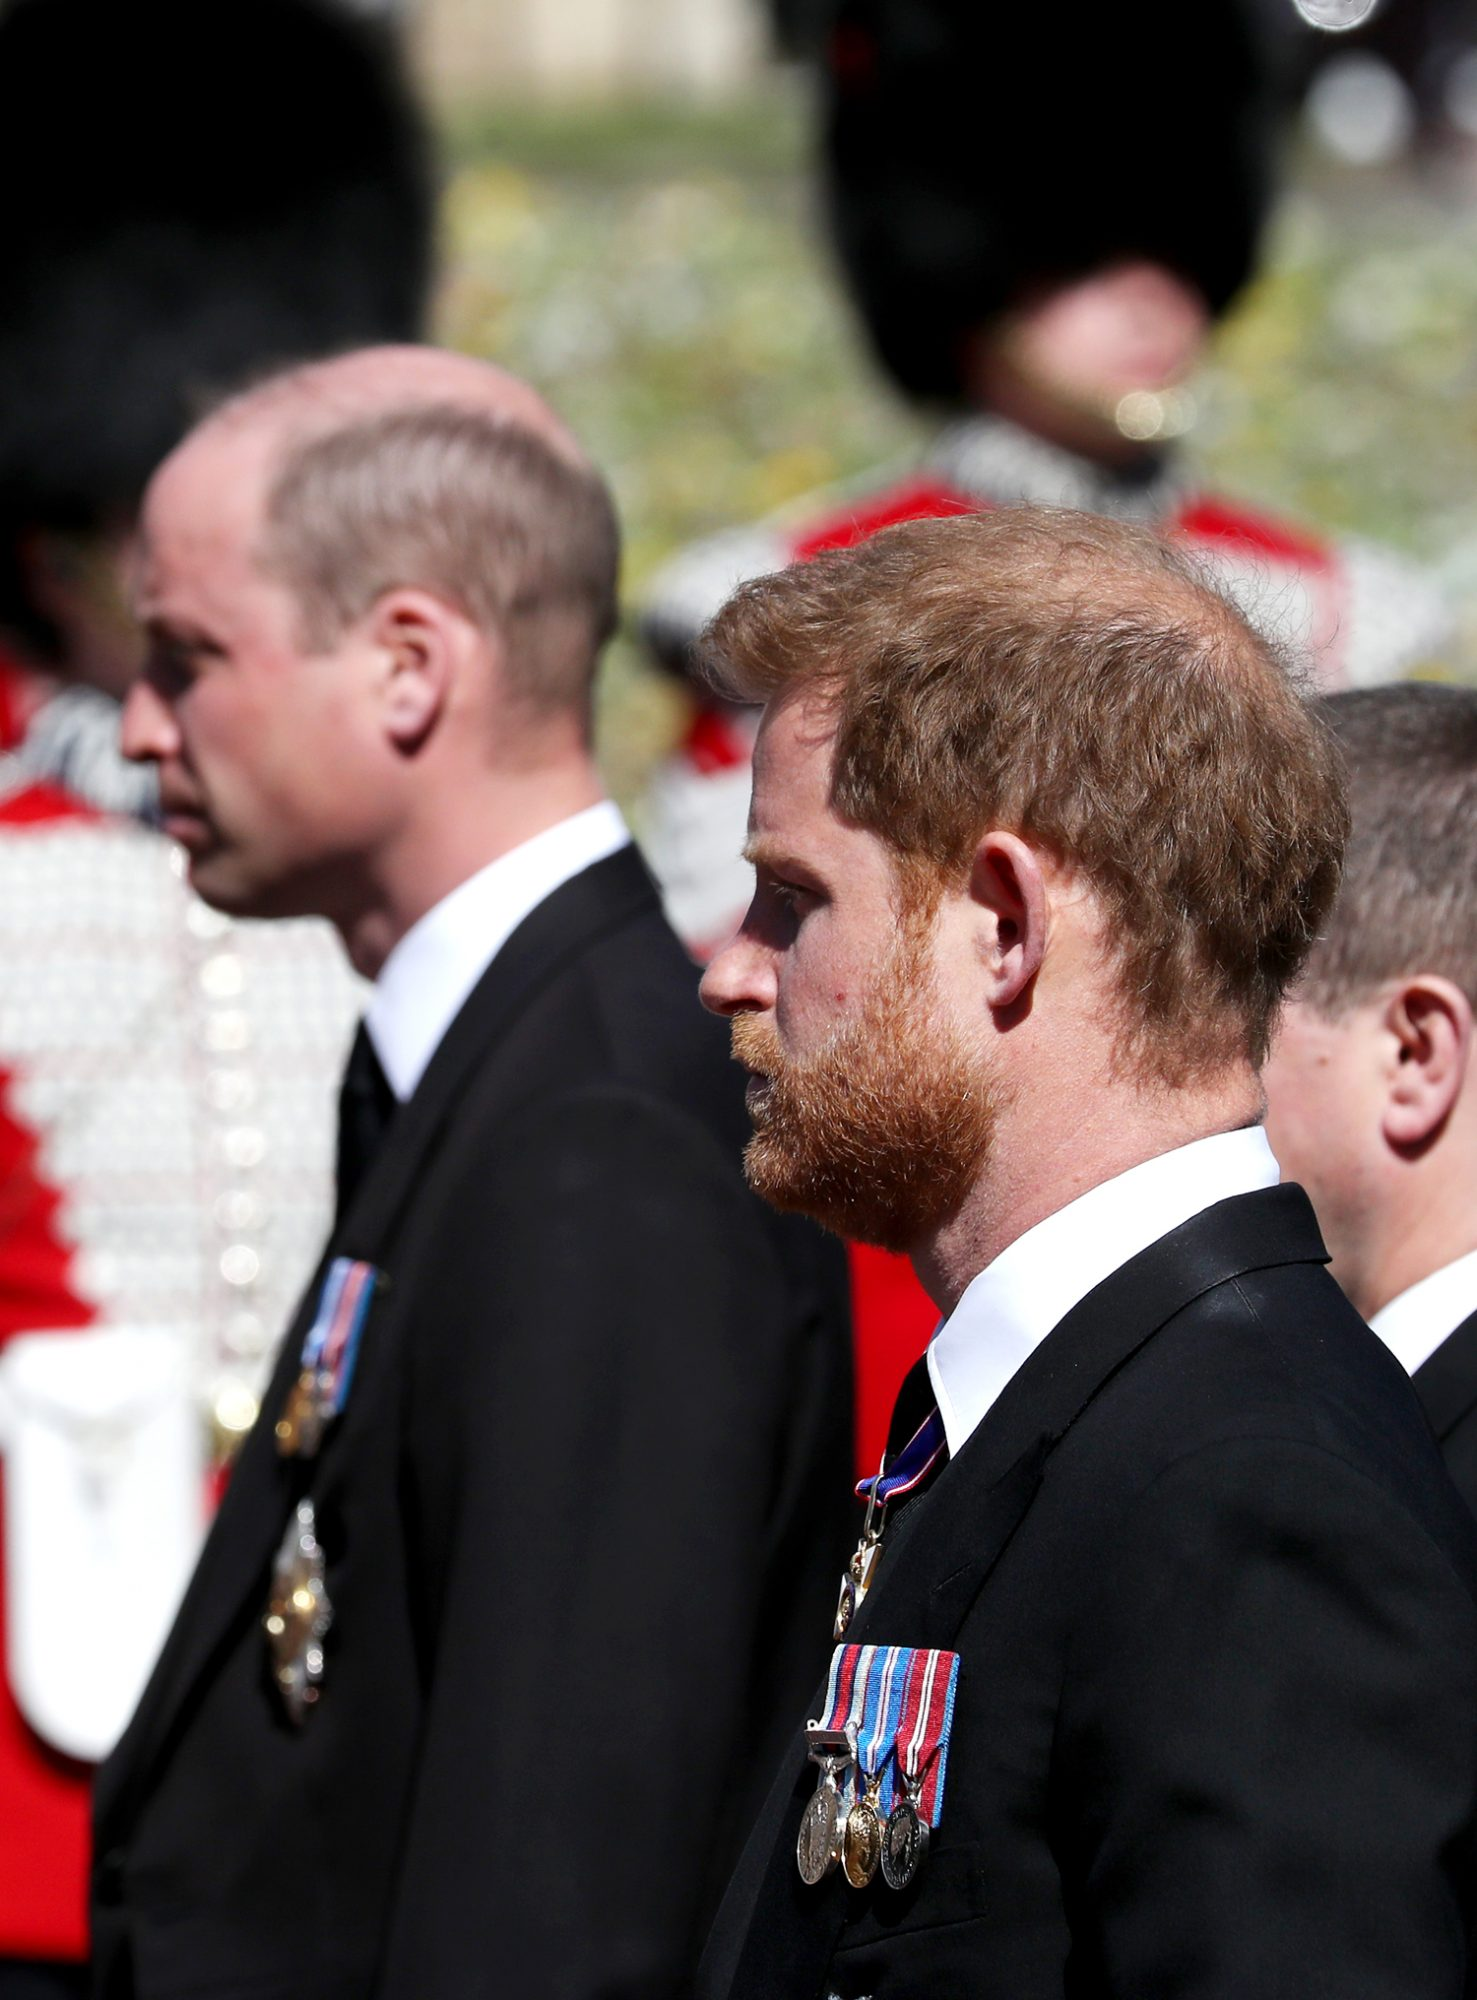 Prince William, Duke of Cambridge and Prince Harry, Duke of Sussex